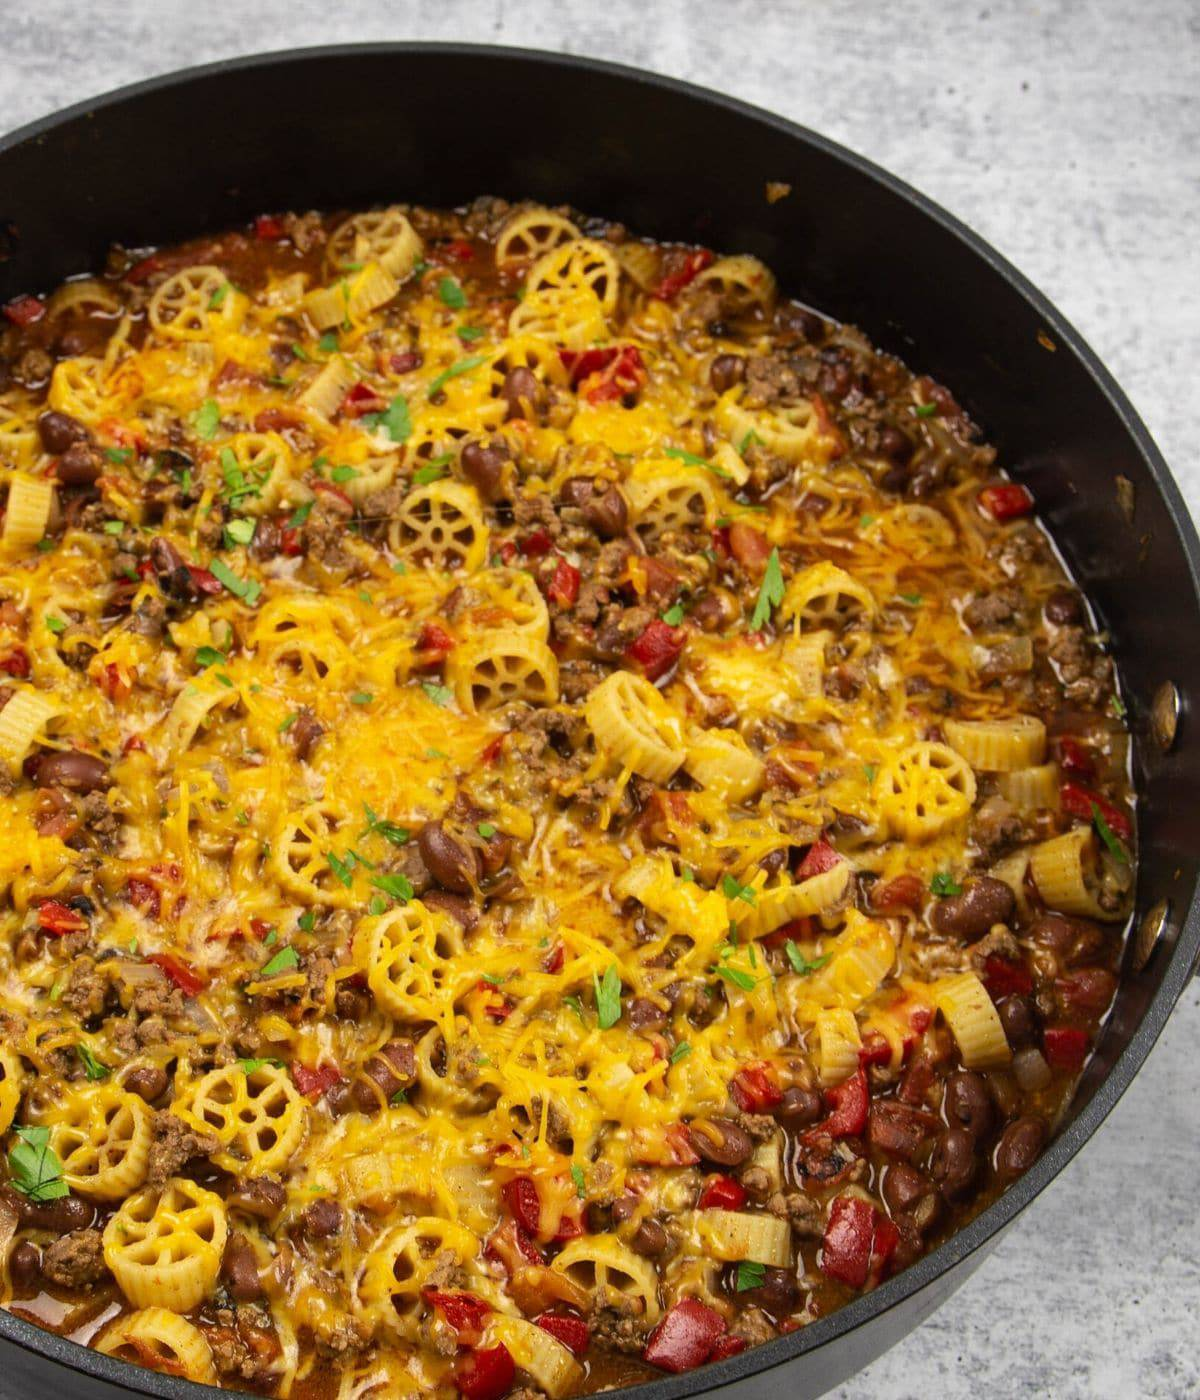 A large black skillet with pasta and ground beef topped with melted cheese.